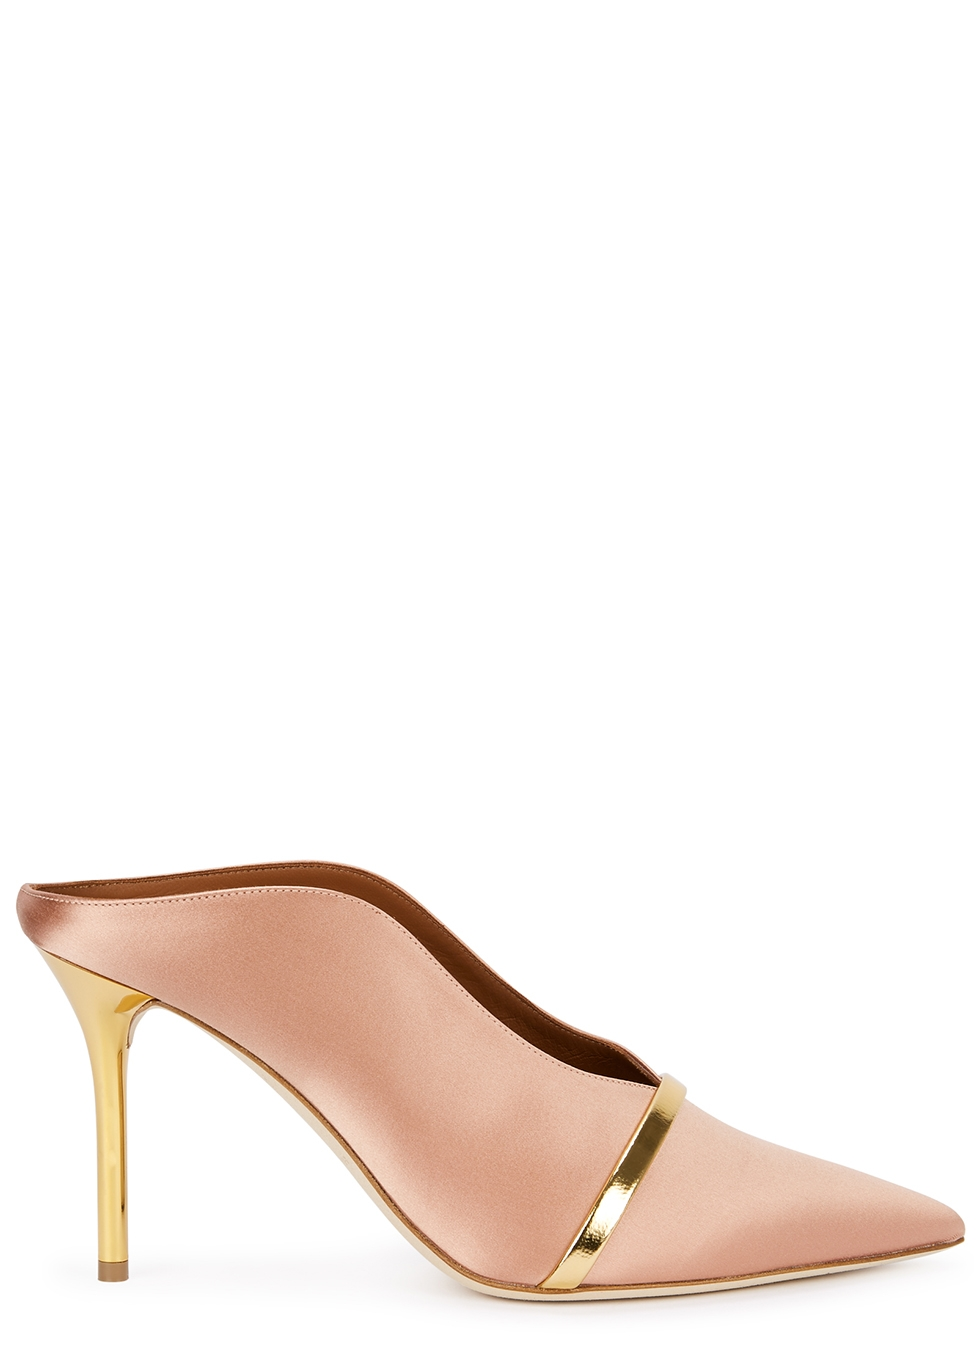 Constance 85 pink satin mules - Malone Souliers